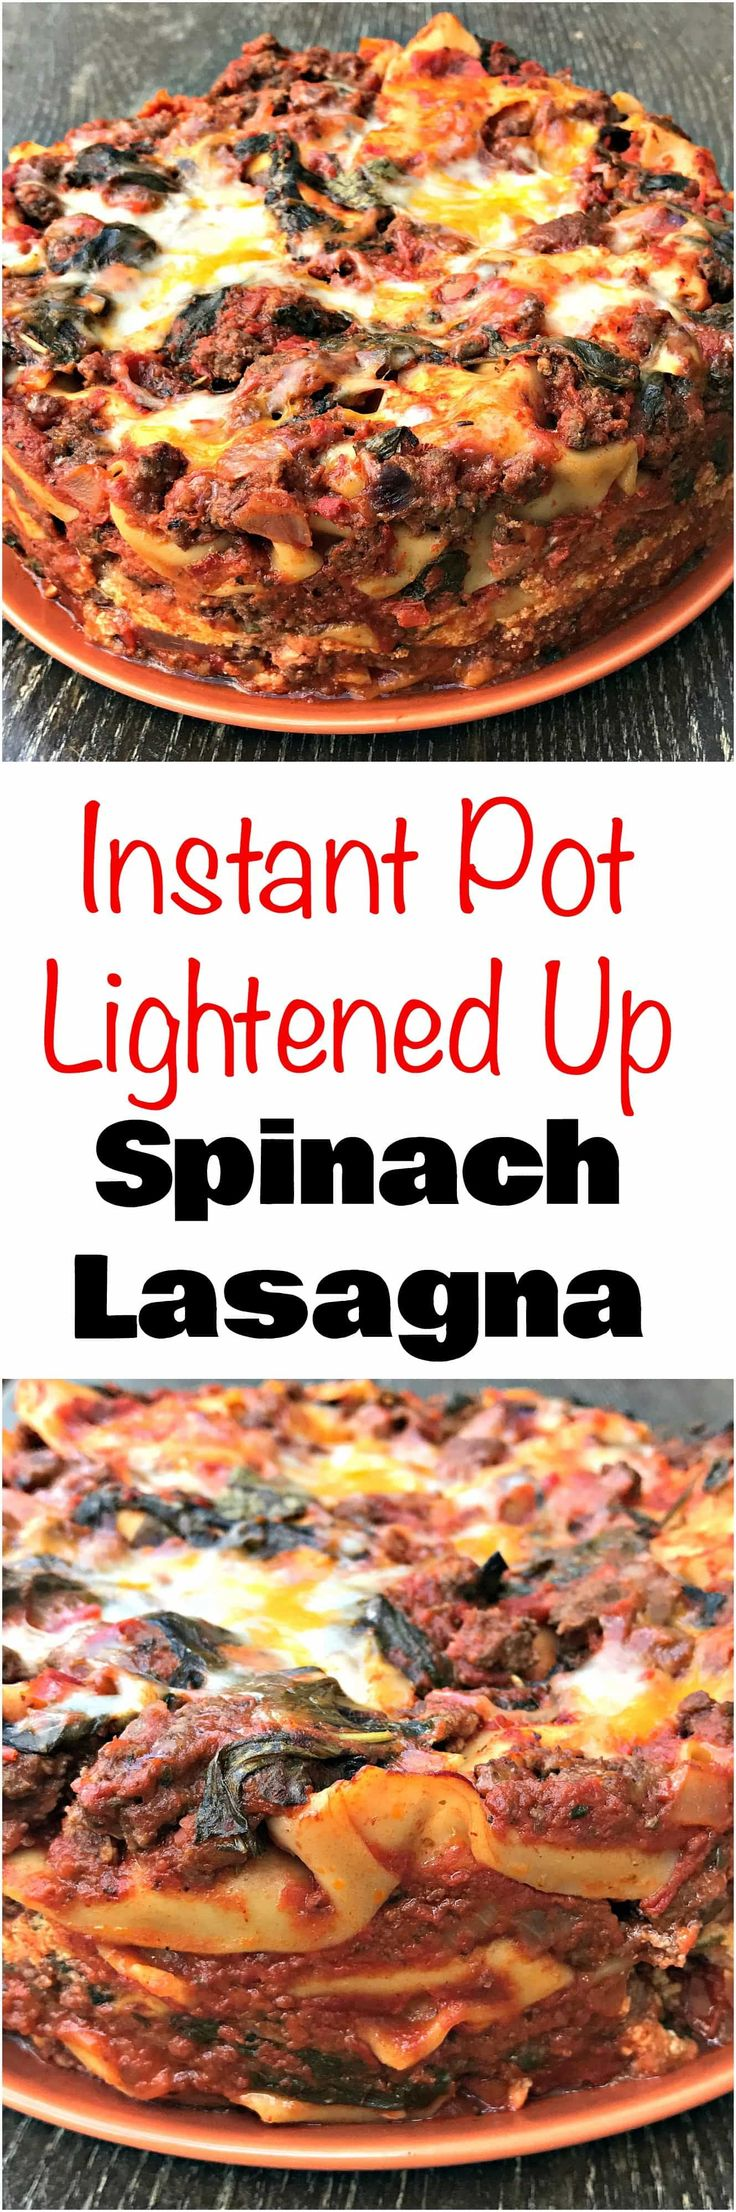 Instant Pot Pressure Cooker Spinach Lasagna is a quick and easy meal with ground beef and homemade marinara sauce. Perfect weeknight dinner.